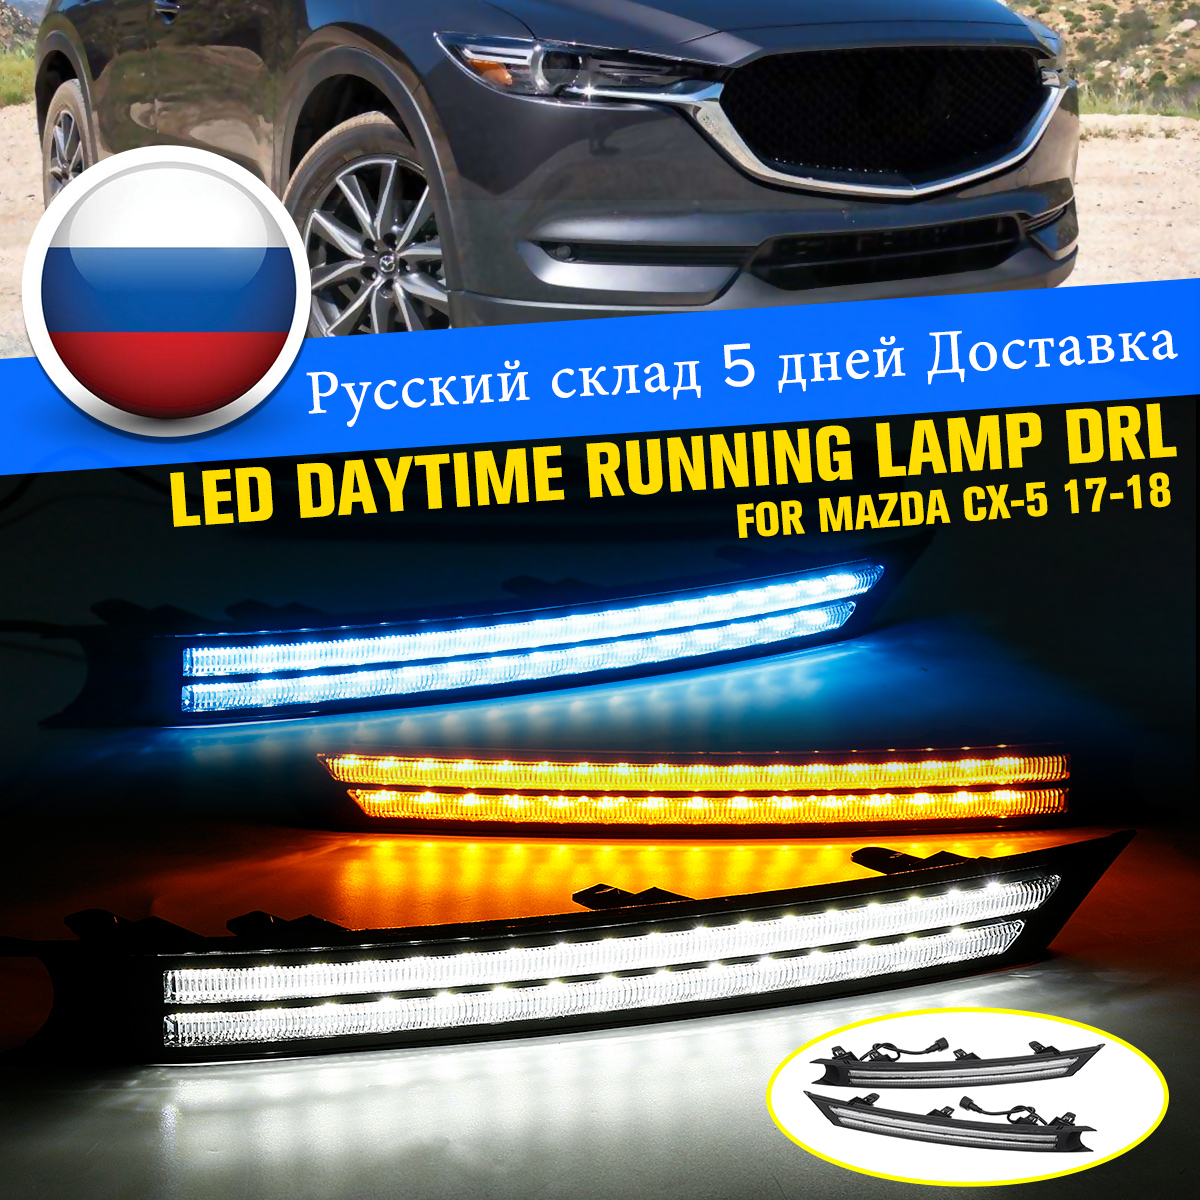 Pair 12V Car Led Daytime Running Light Fog Lamp Decoration For Mazda Cx-5 Cx5 2017 2018 Flowing Turn Signal Waterproof Car DrlPair 12V Car Led Daytime Running Light Fog Lamp Decoration For Mazda Cx-5 Cx5 2017 2018 Flowing Turn Signal Waterproof Car Drl